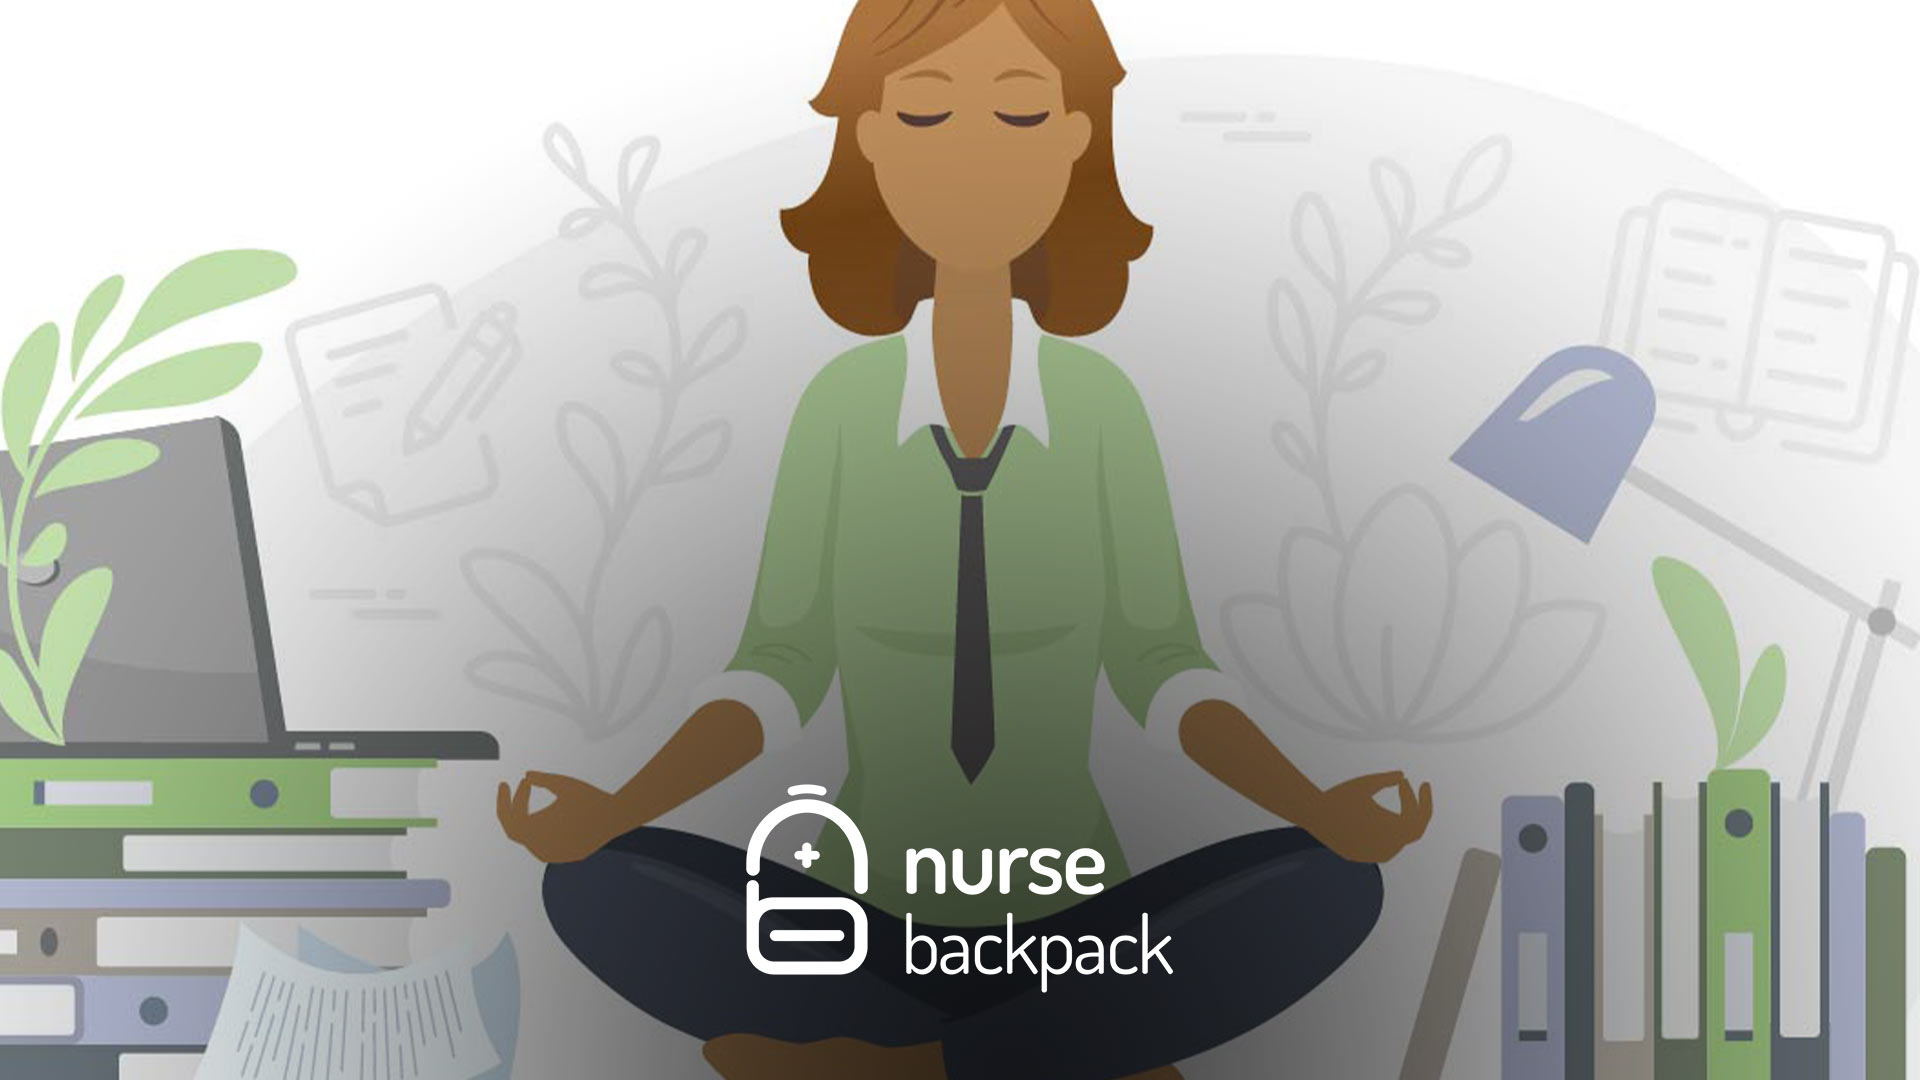 nurse backpack mobile app provides advice to relax to nurses